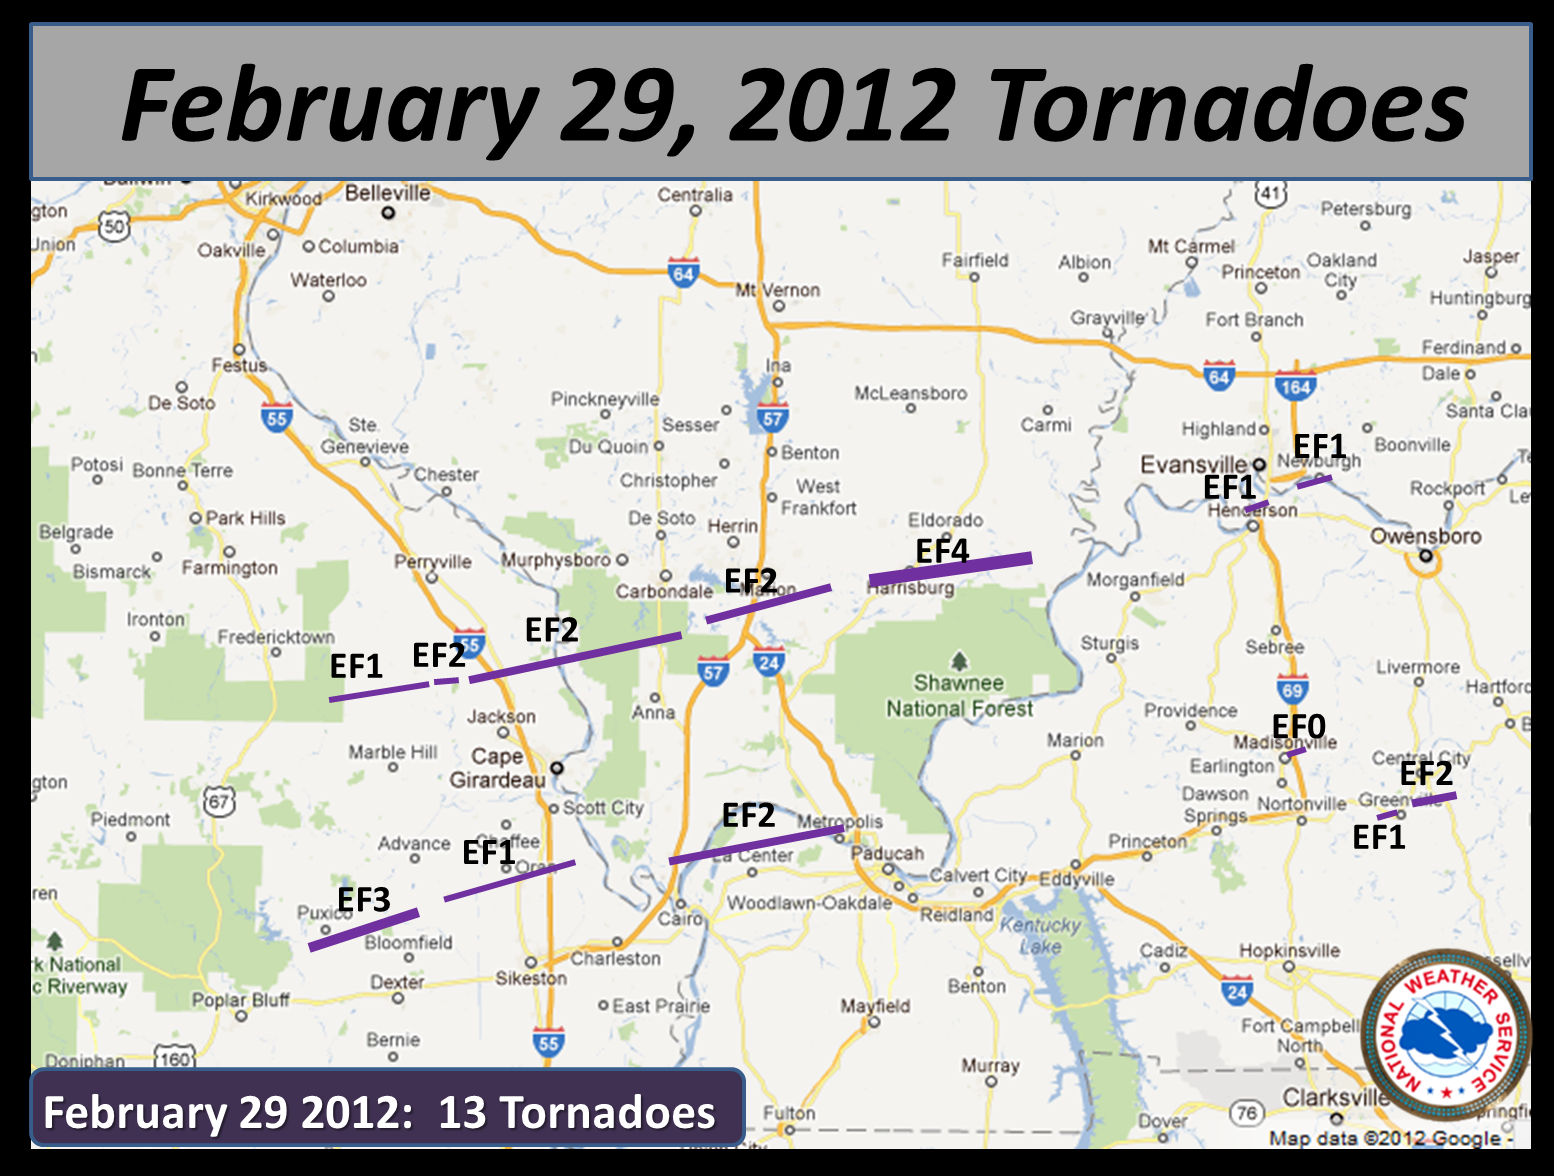 The Storms the morning of February 29th caused 13 tornadoes across souther Illinois. Source: National Weather Service